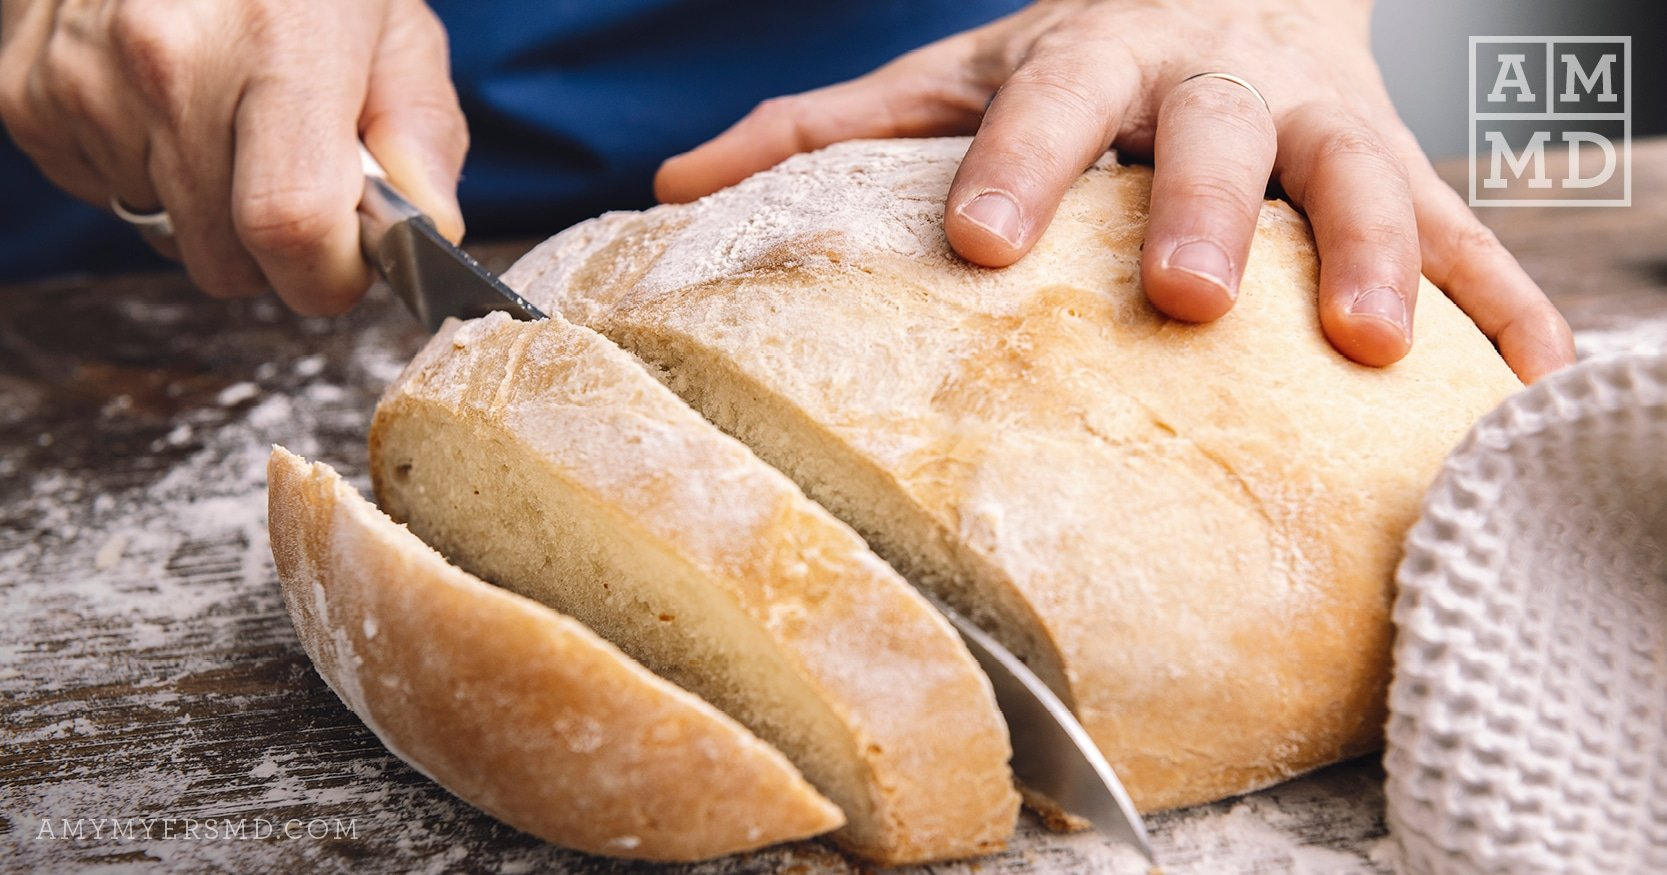 The Benefits of Going Gluten Free if You Have an Autoimmune Disease